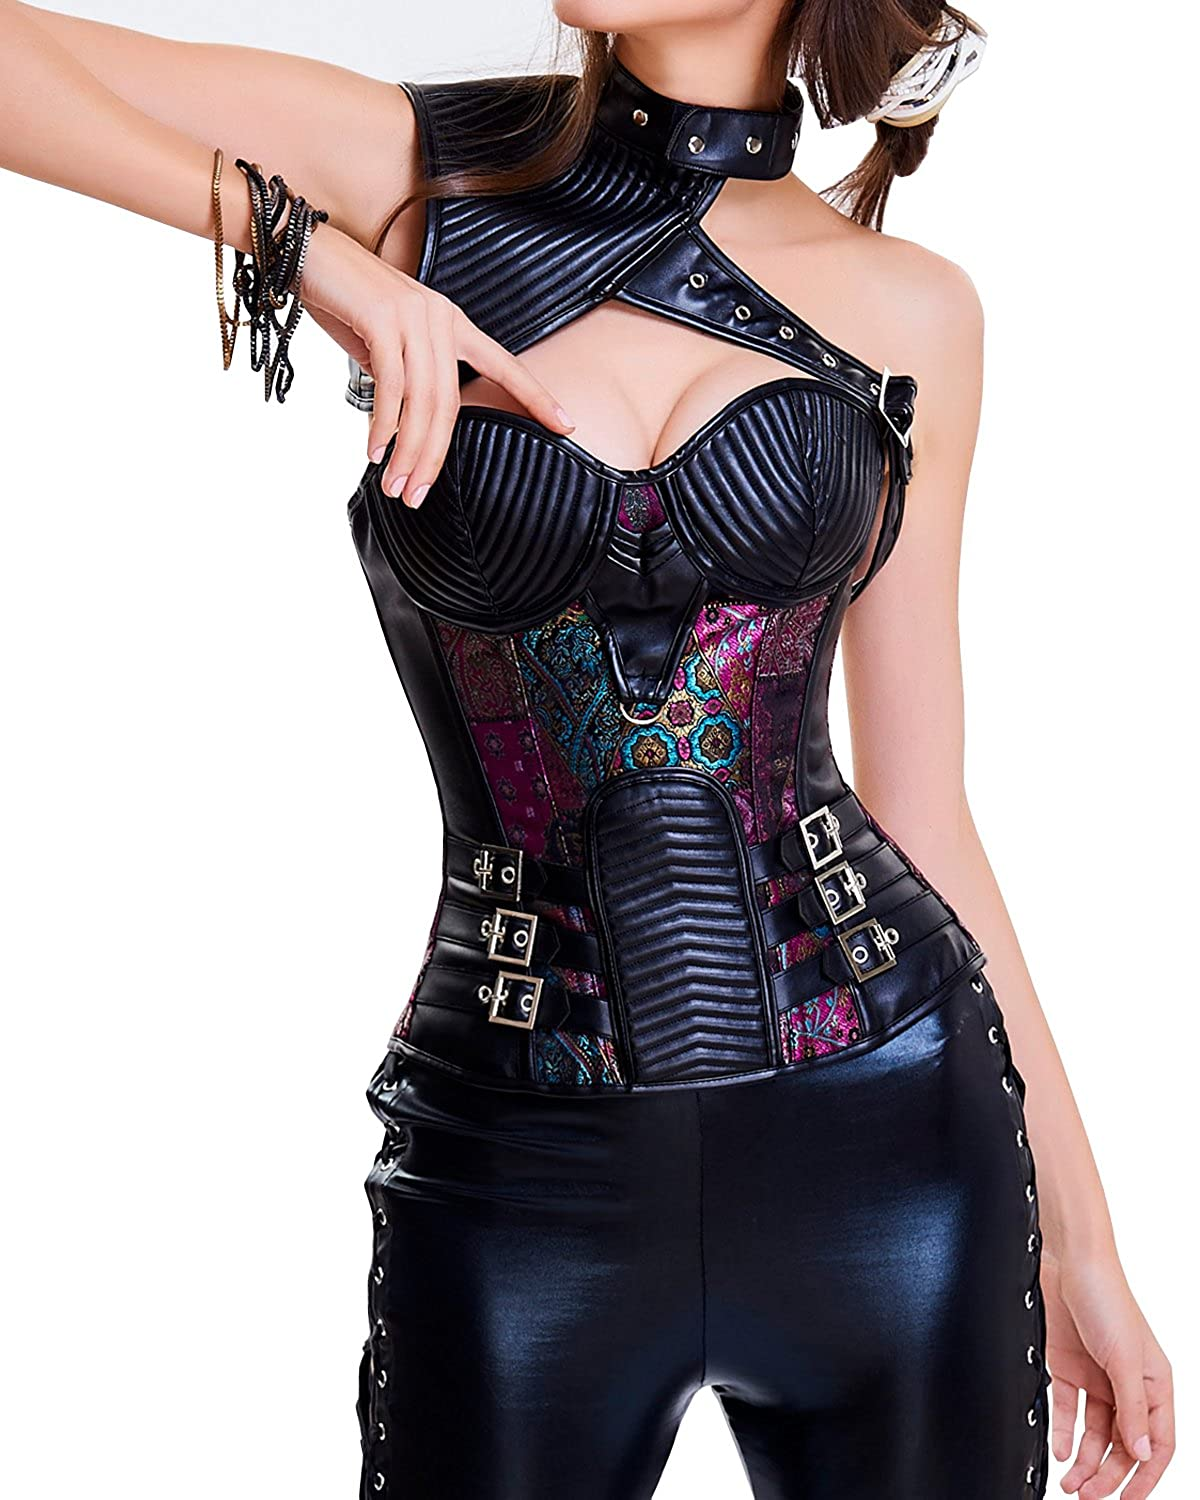 8b8cf2e968 Aecibzo Women s Steampunk Gothic Spiral Steel Boned Corset Tops Bustier  Overbust at Amazon Women s Clothing store